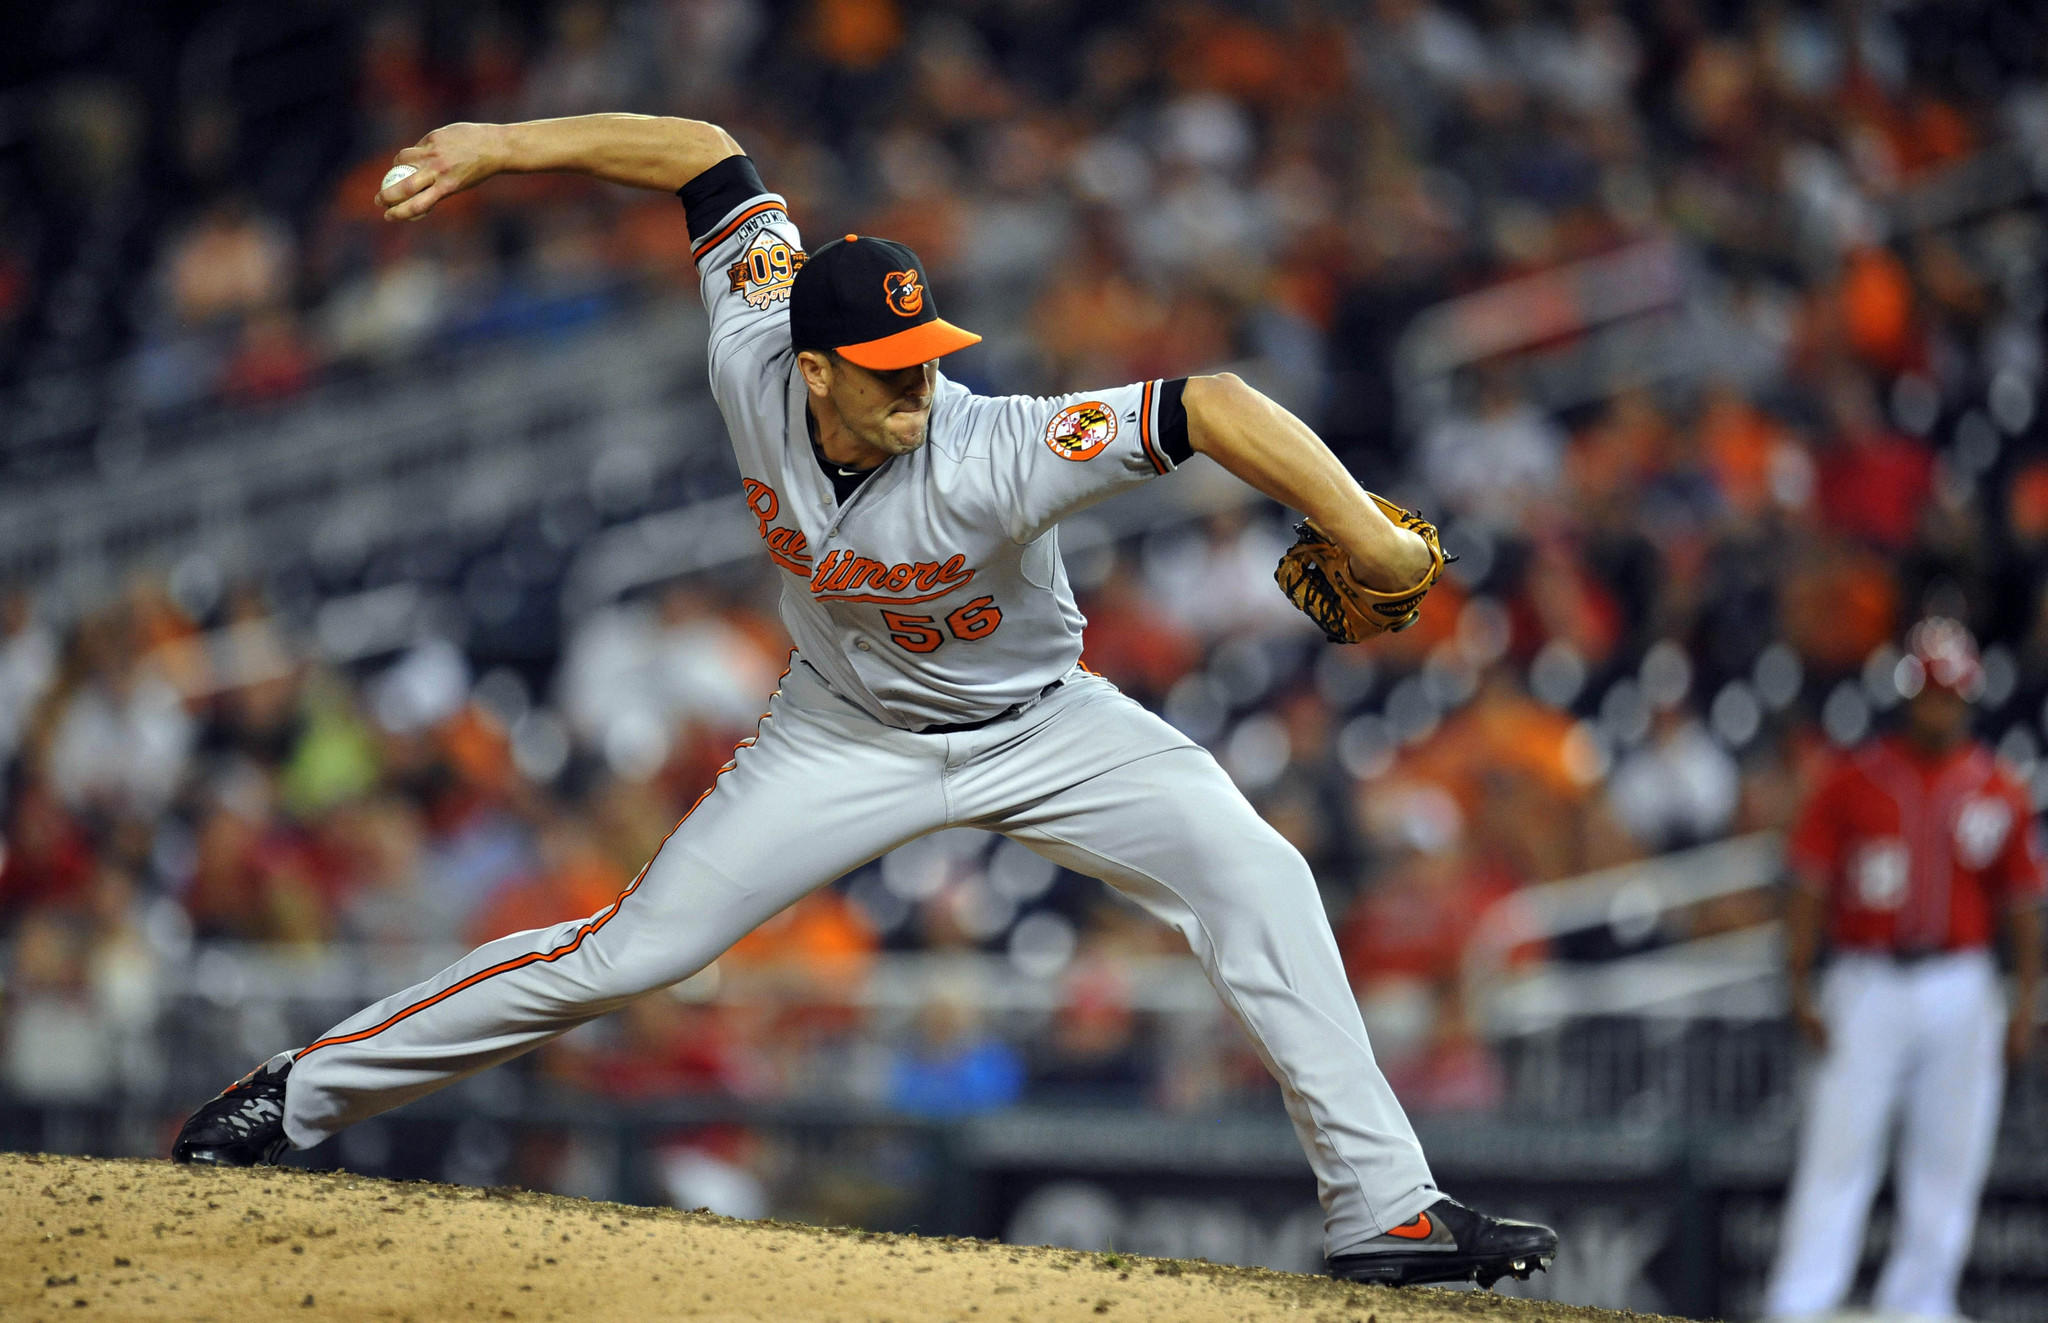 Orioles pitcher Darren O'Day had a 0.98 ERA through Monday.